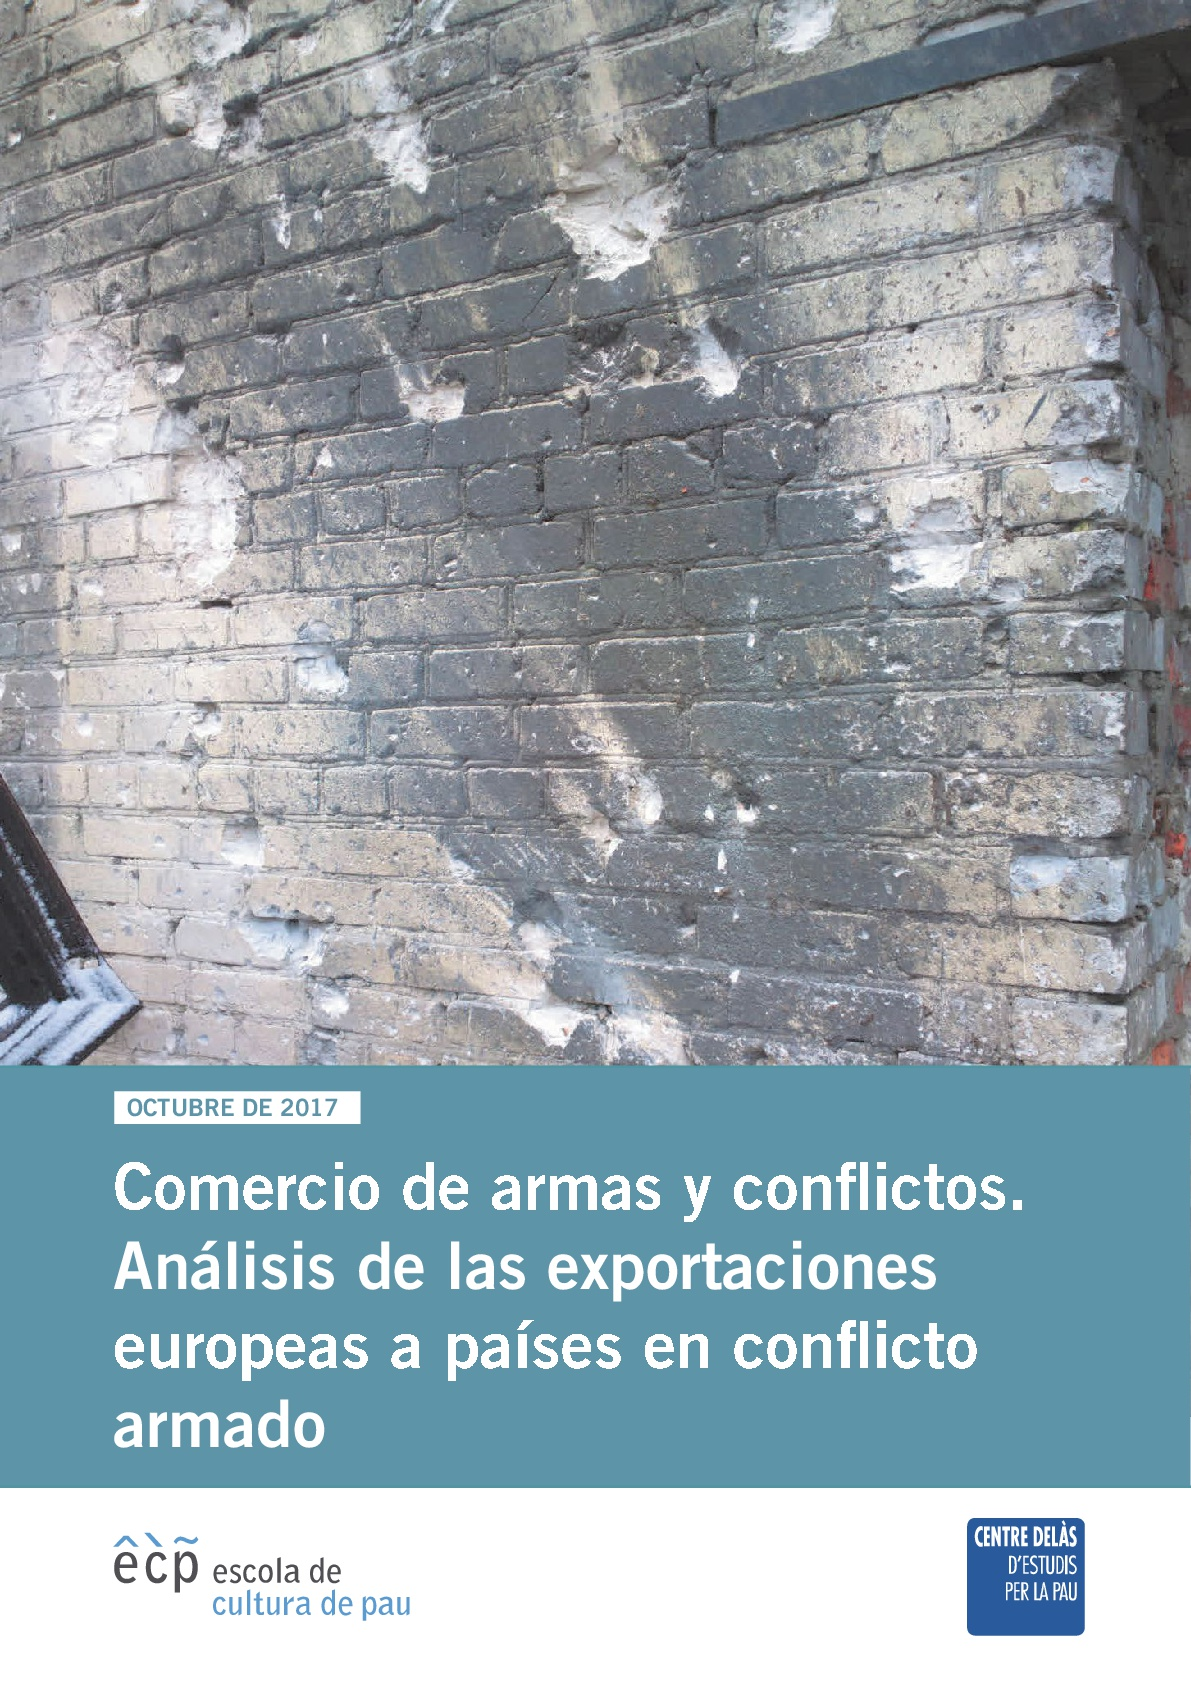 Report of Delàs Center and ECP: Arms trade and conflicts. Analysis of European exports to countries in armed conflict